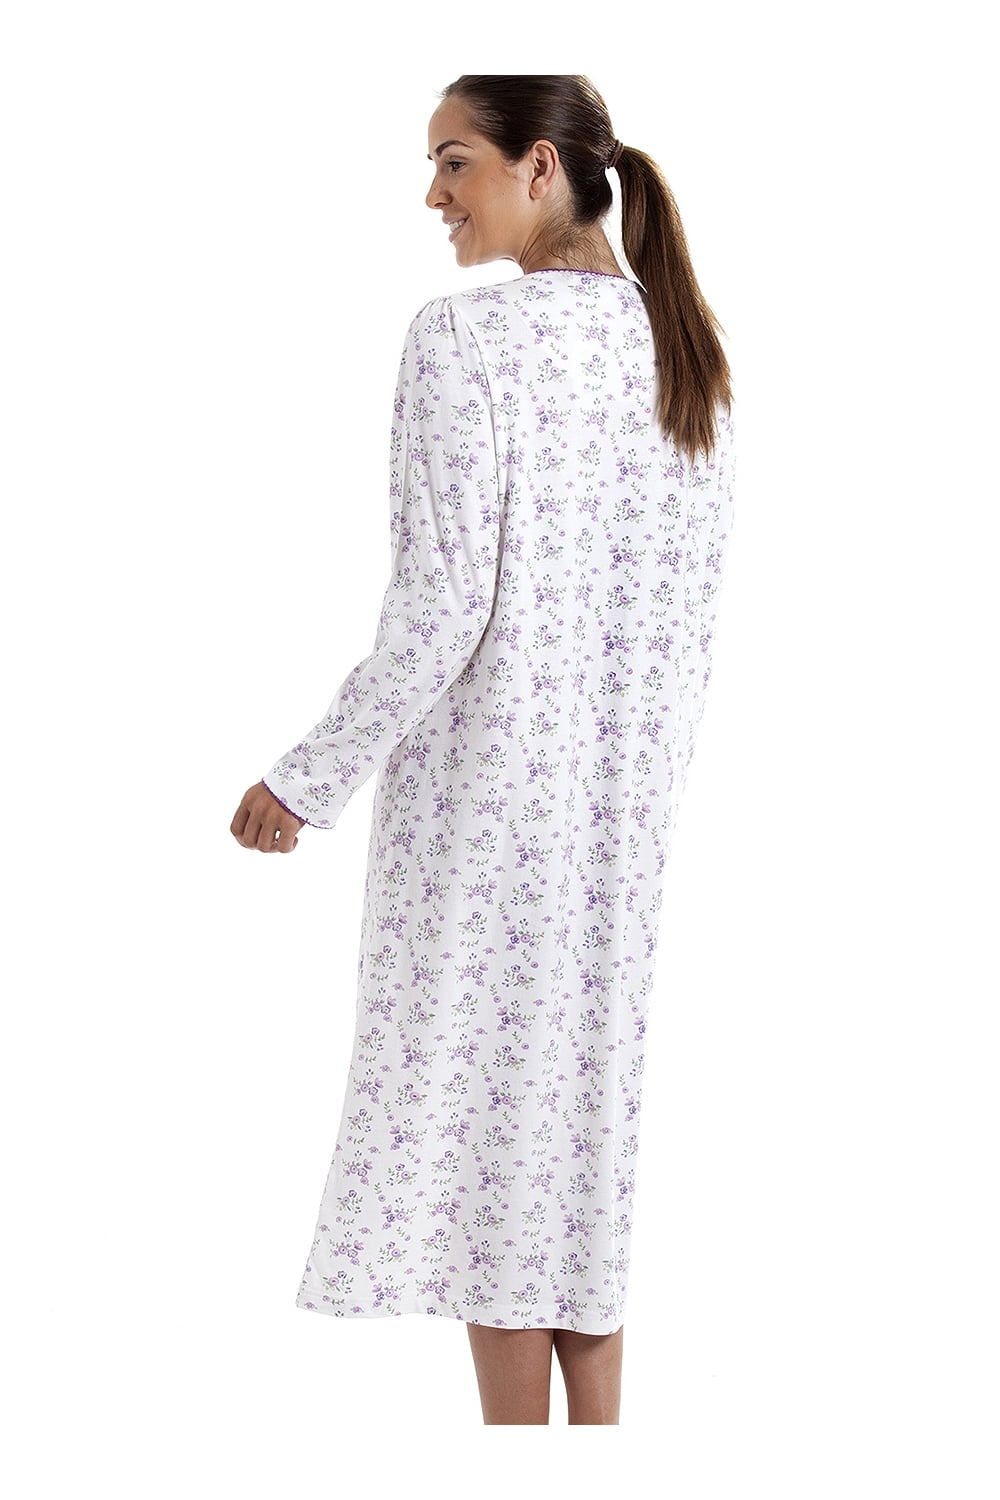 7430c584fd Camille Classic Long Sleeve Purple Floral Print 100% Cotton White Nightdress